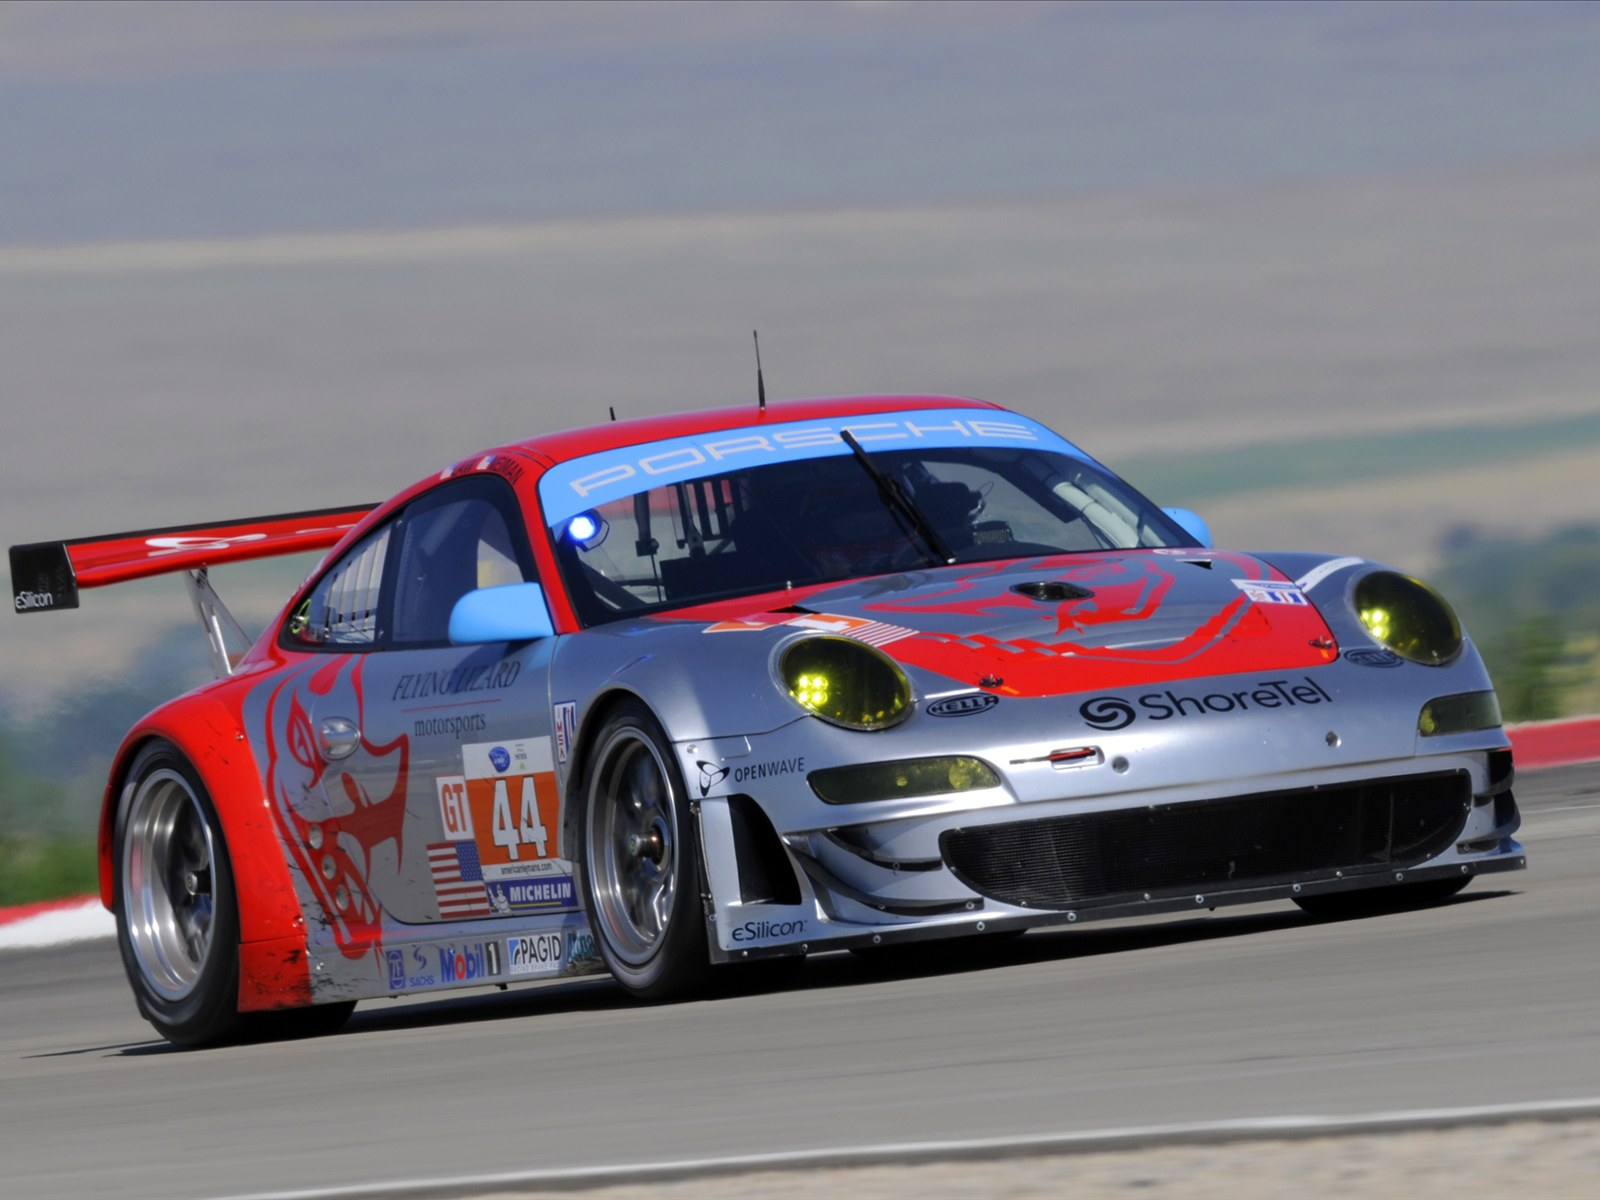 Free Download Hq Porsche Racing Cars Wallpaper Num 15